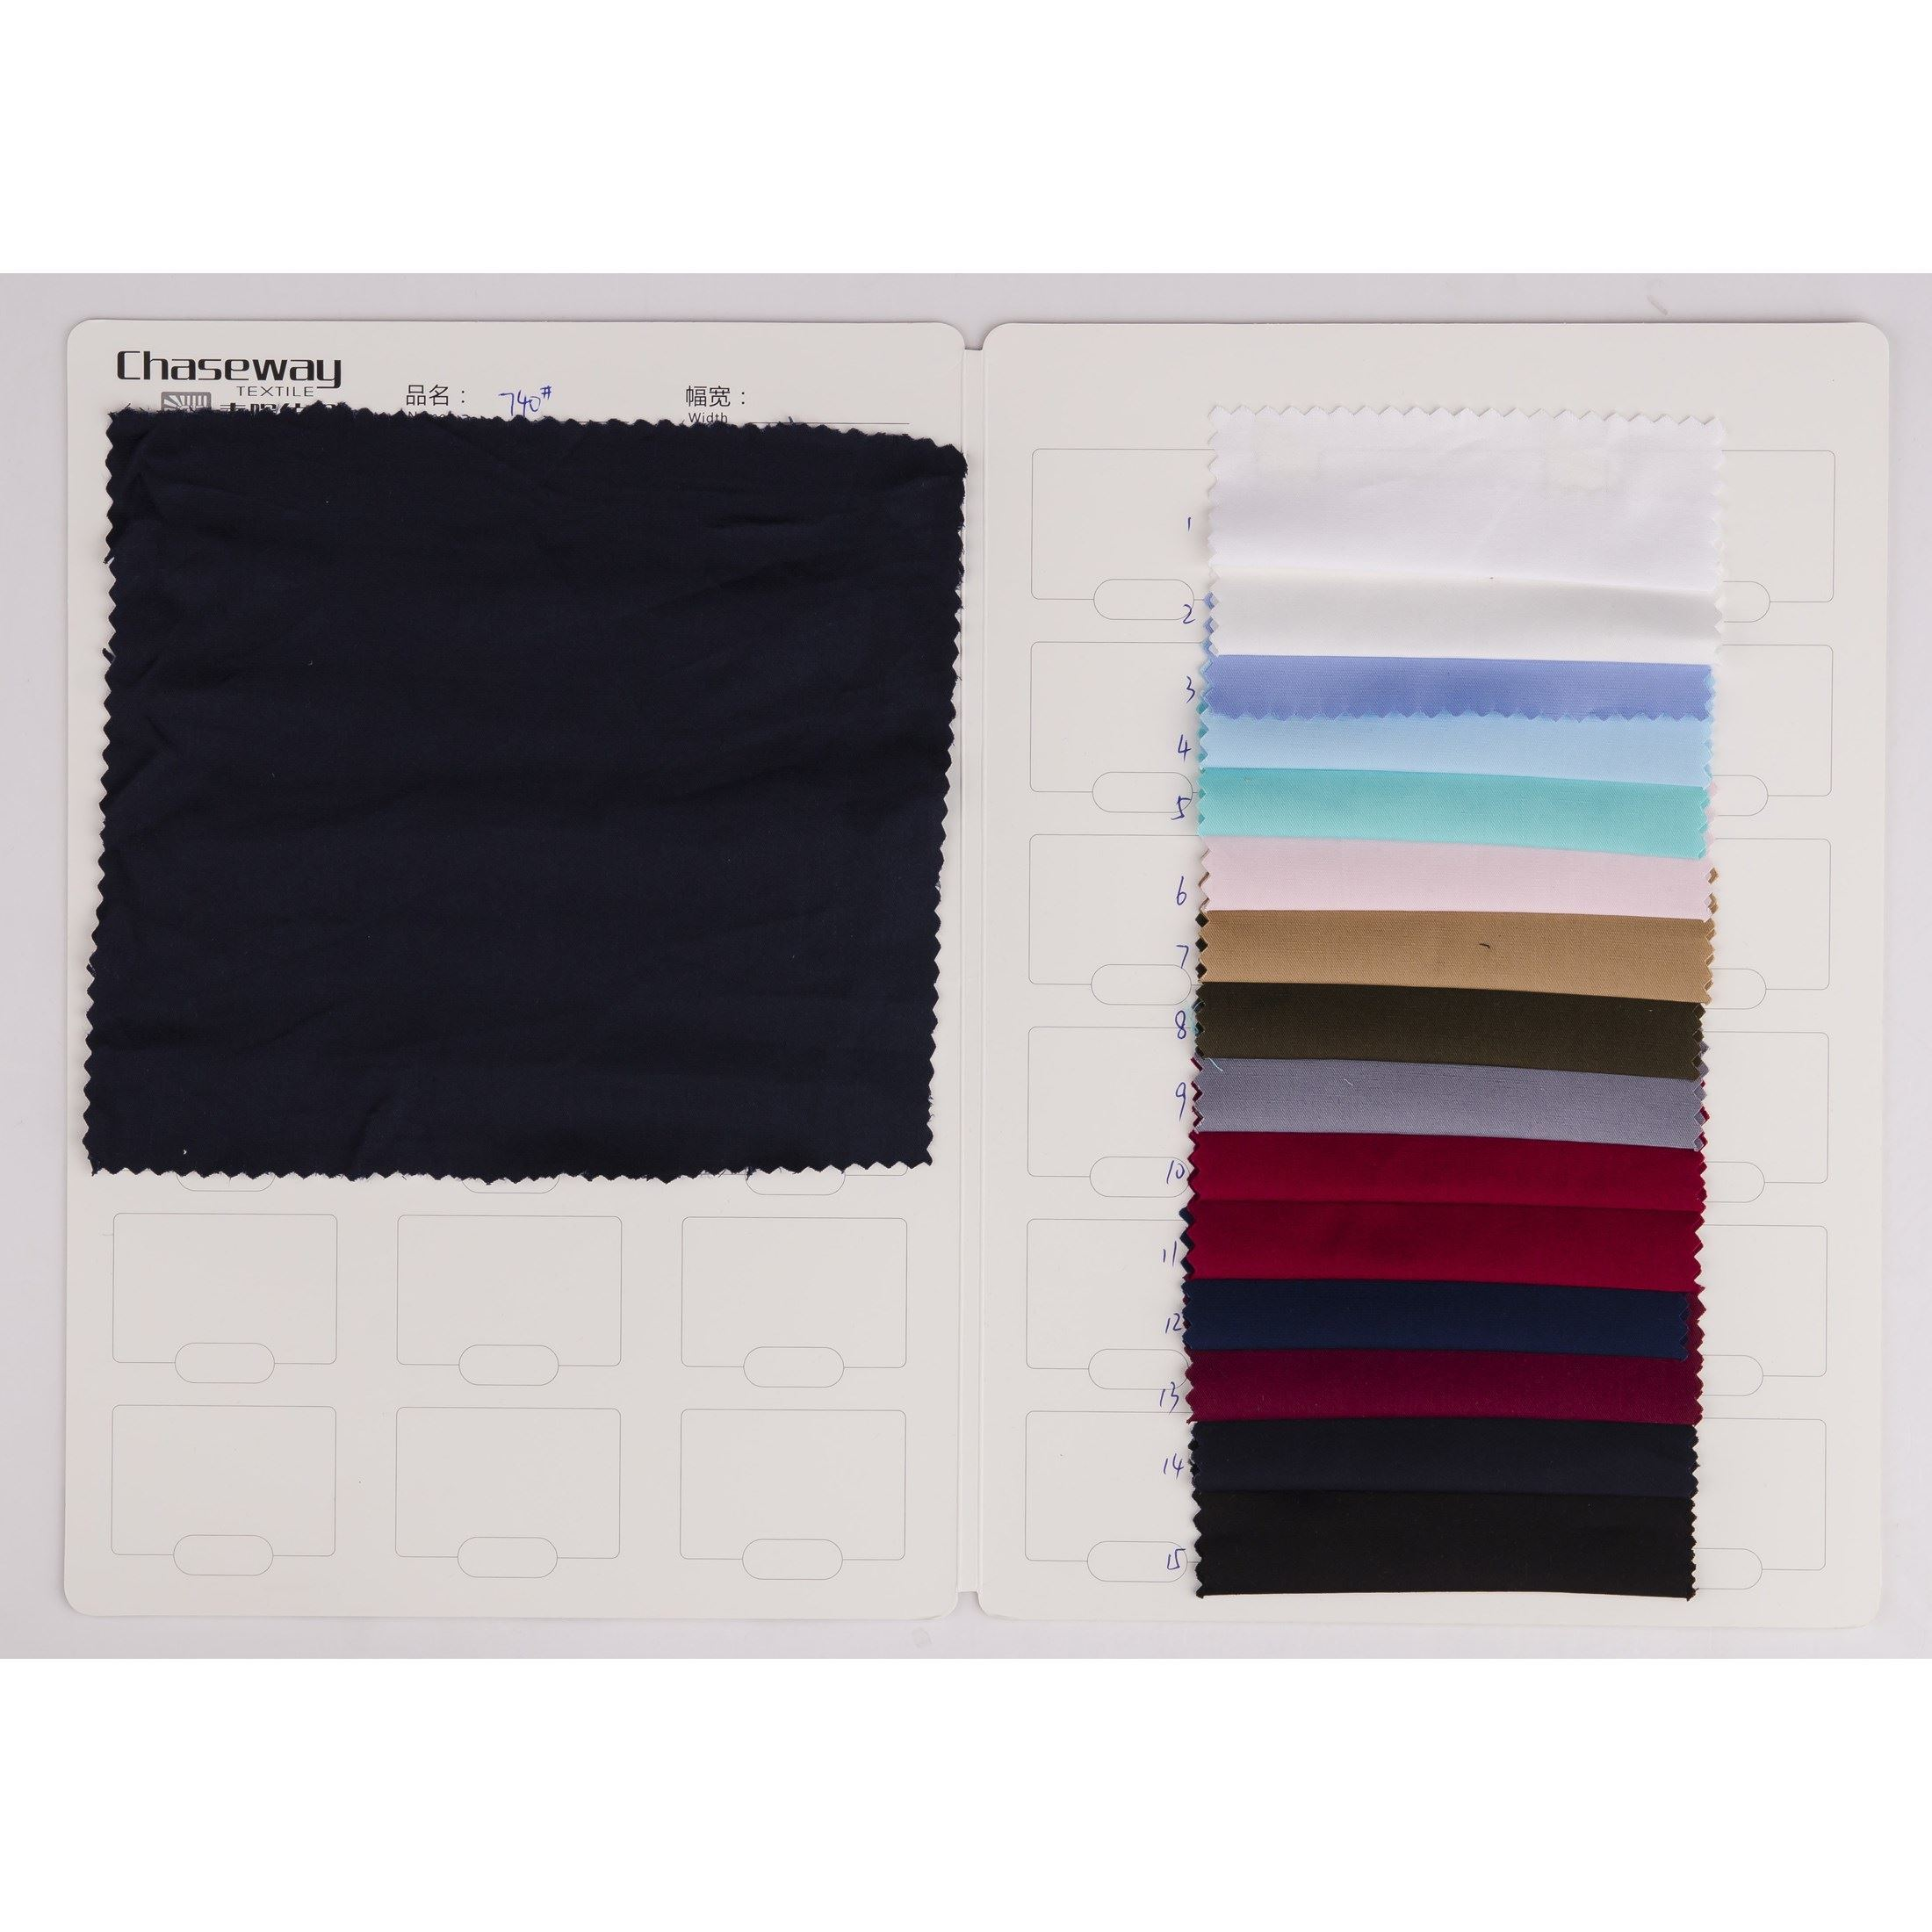 Woven Plain Dyed Spandex Cotton Twill Fabric for Shirt